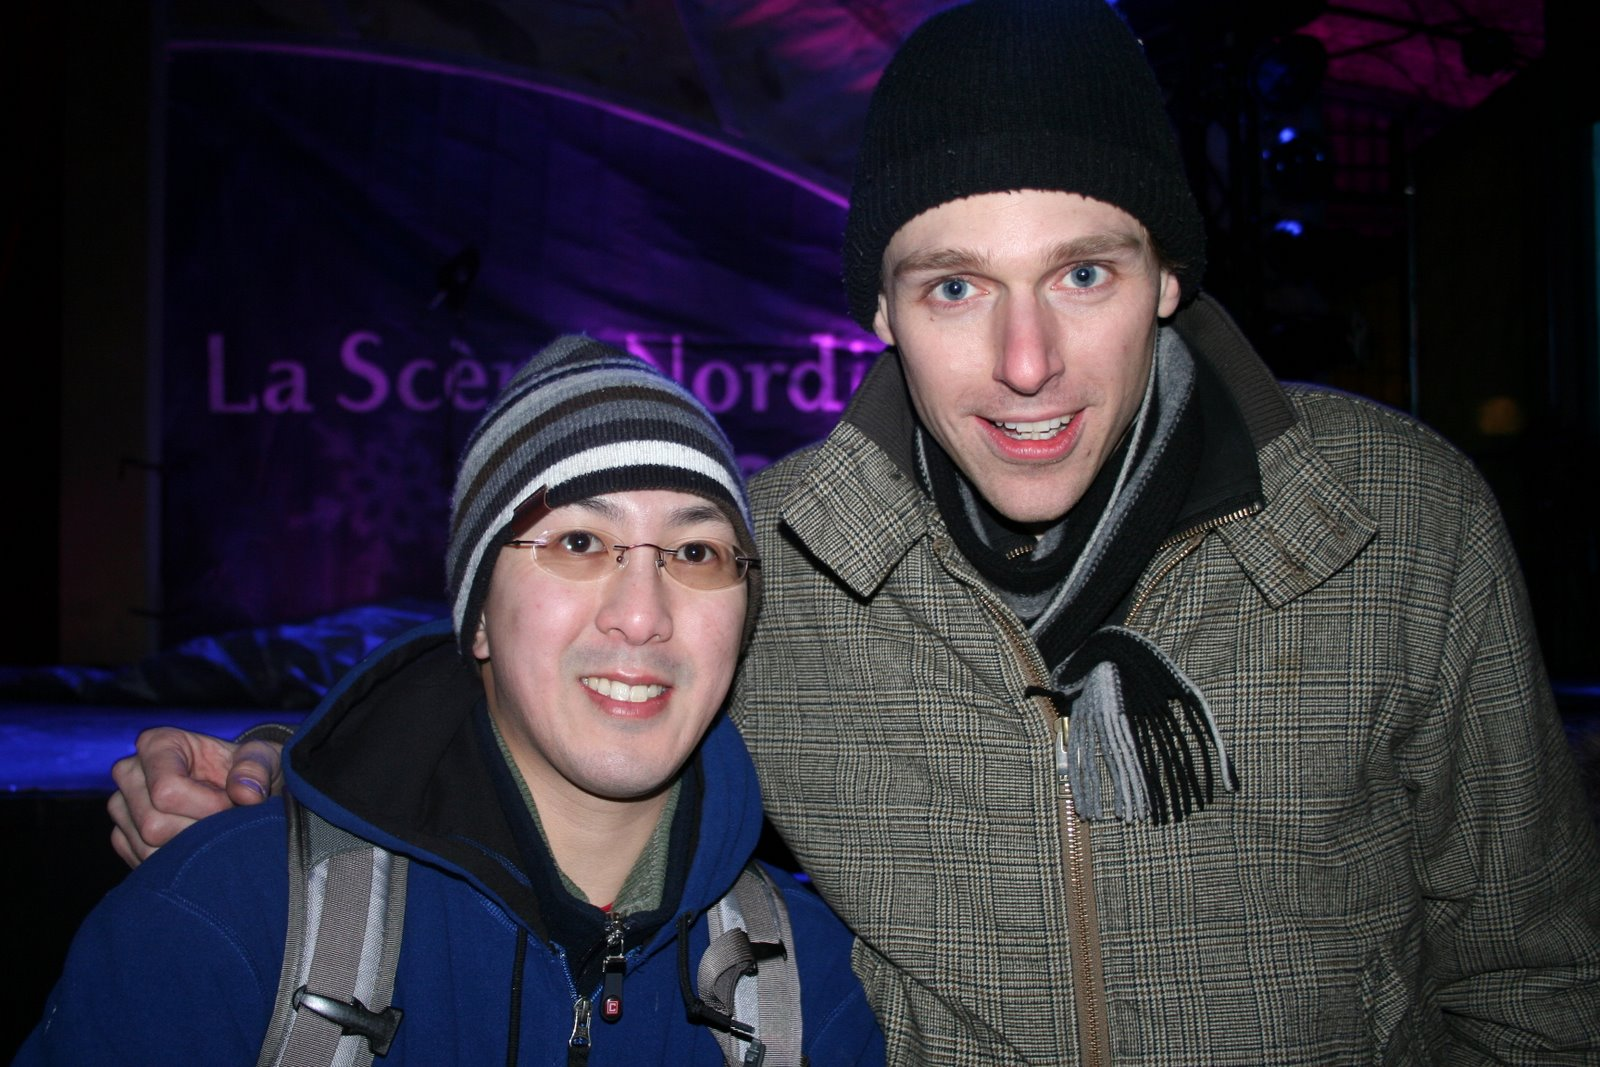 With Joel Plaskett at Winterlude 2008